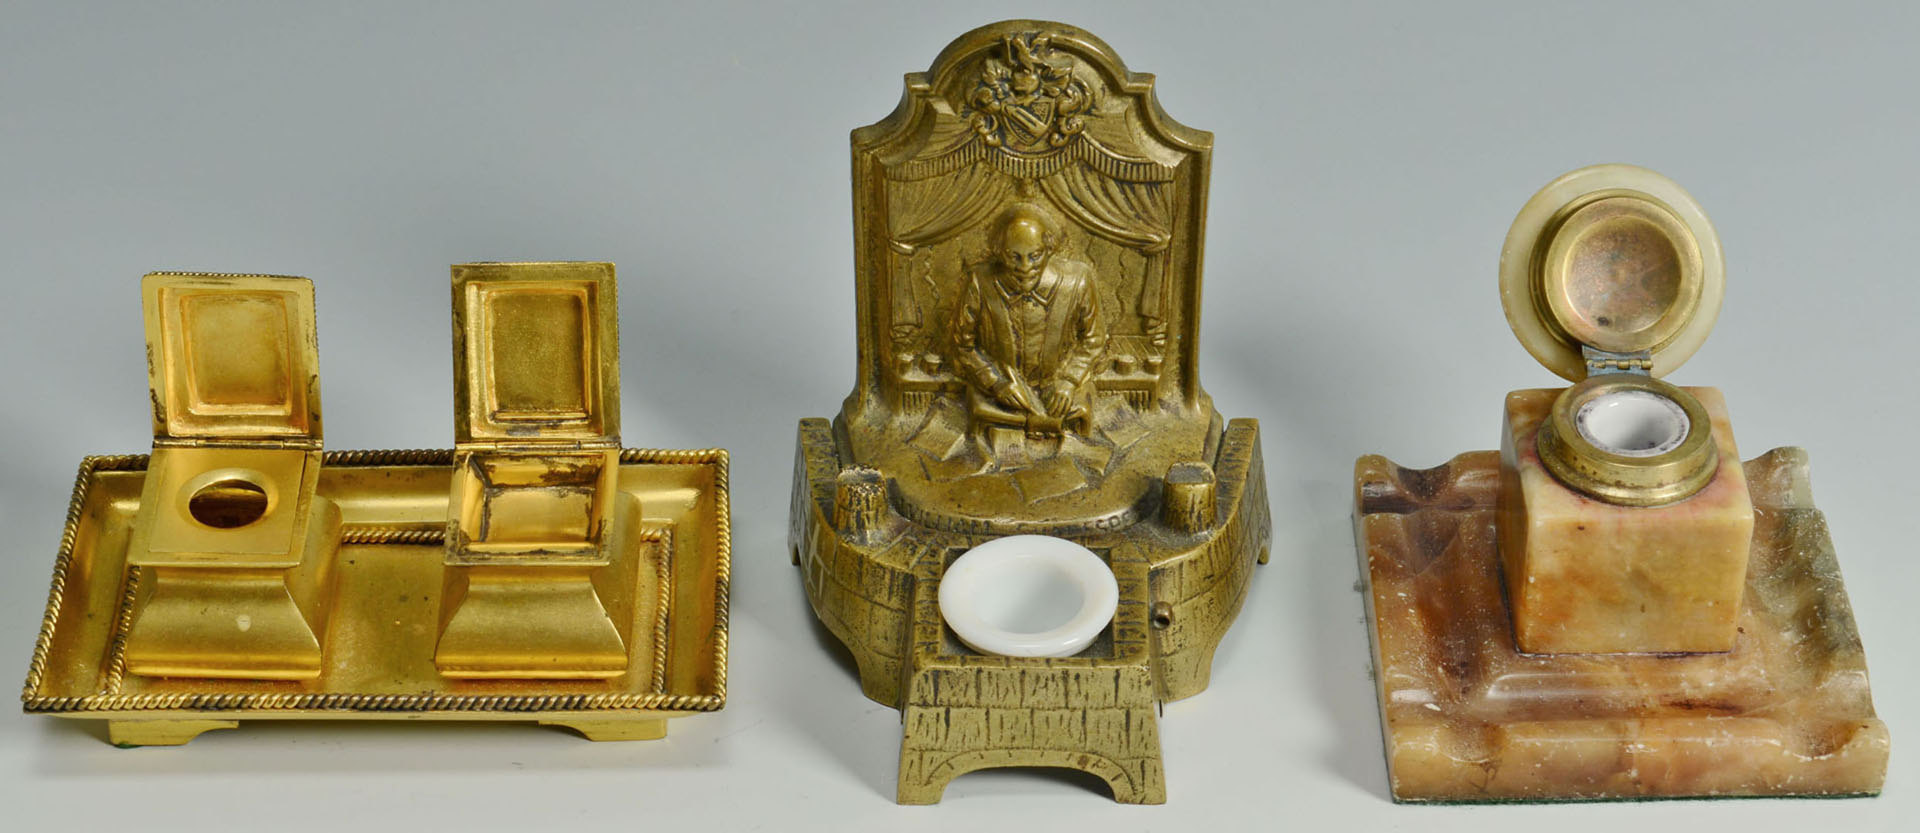 Lot 274: Grouping of 14 Desk Top Articles, Many Bronze